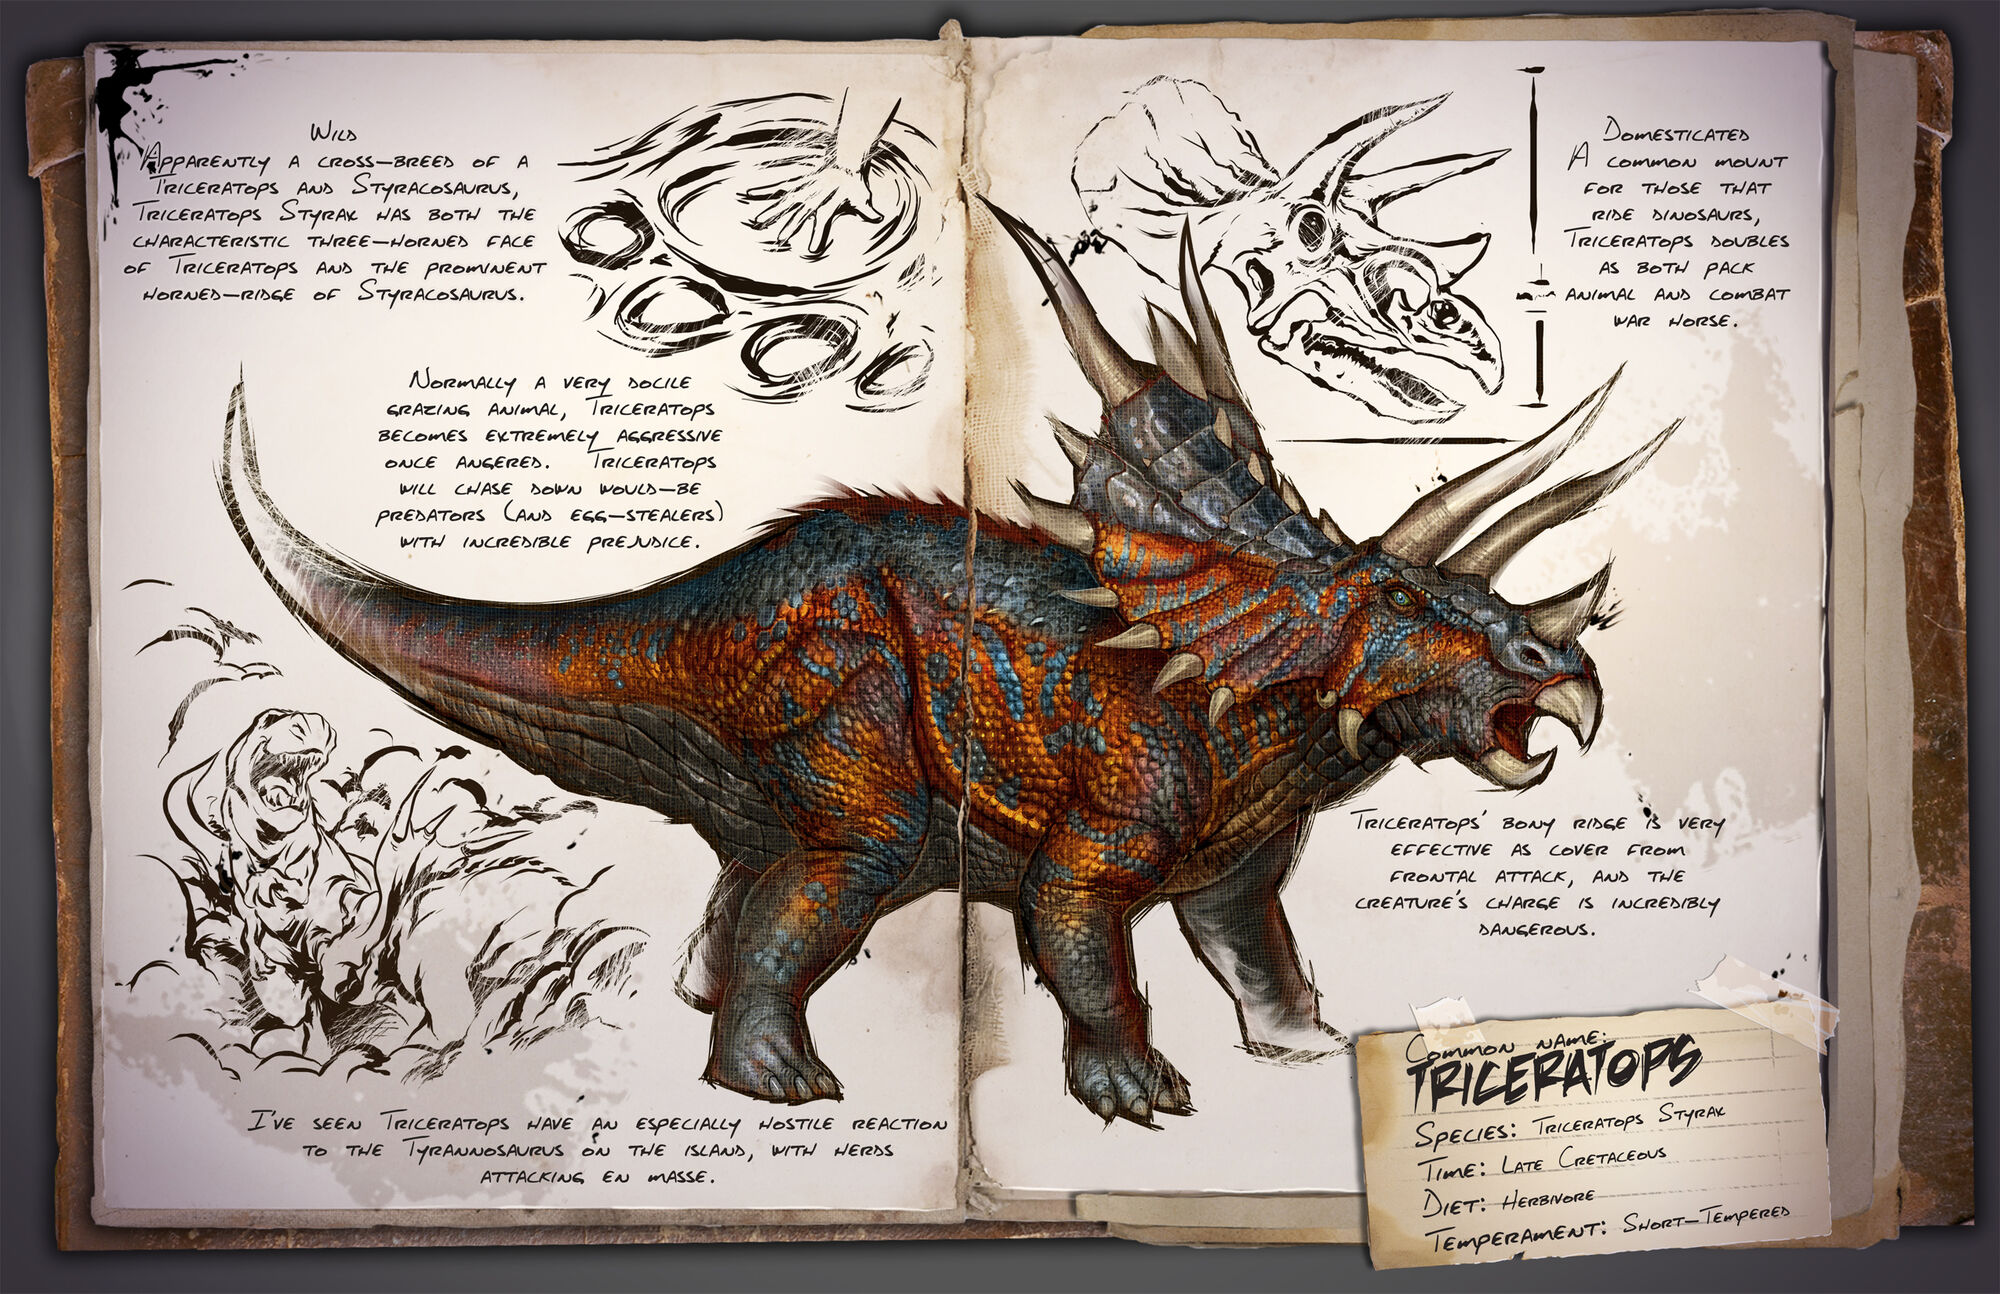 Triceratops   ARK: Survival Evolved Wiki   FANDOM powered by Wikia